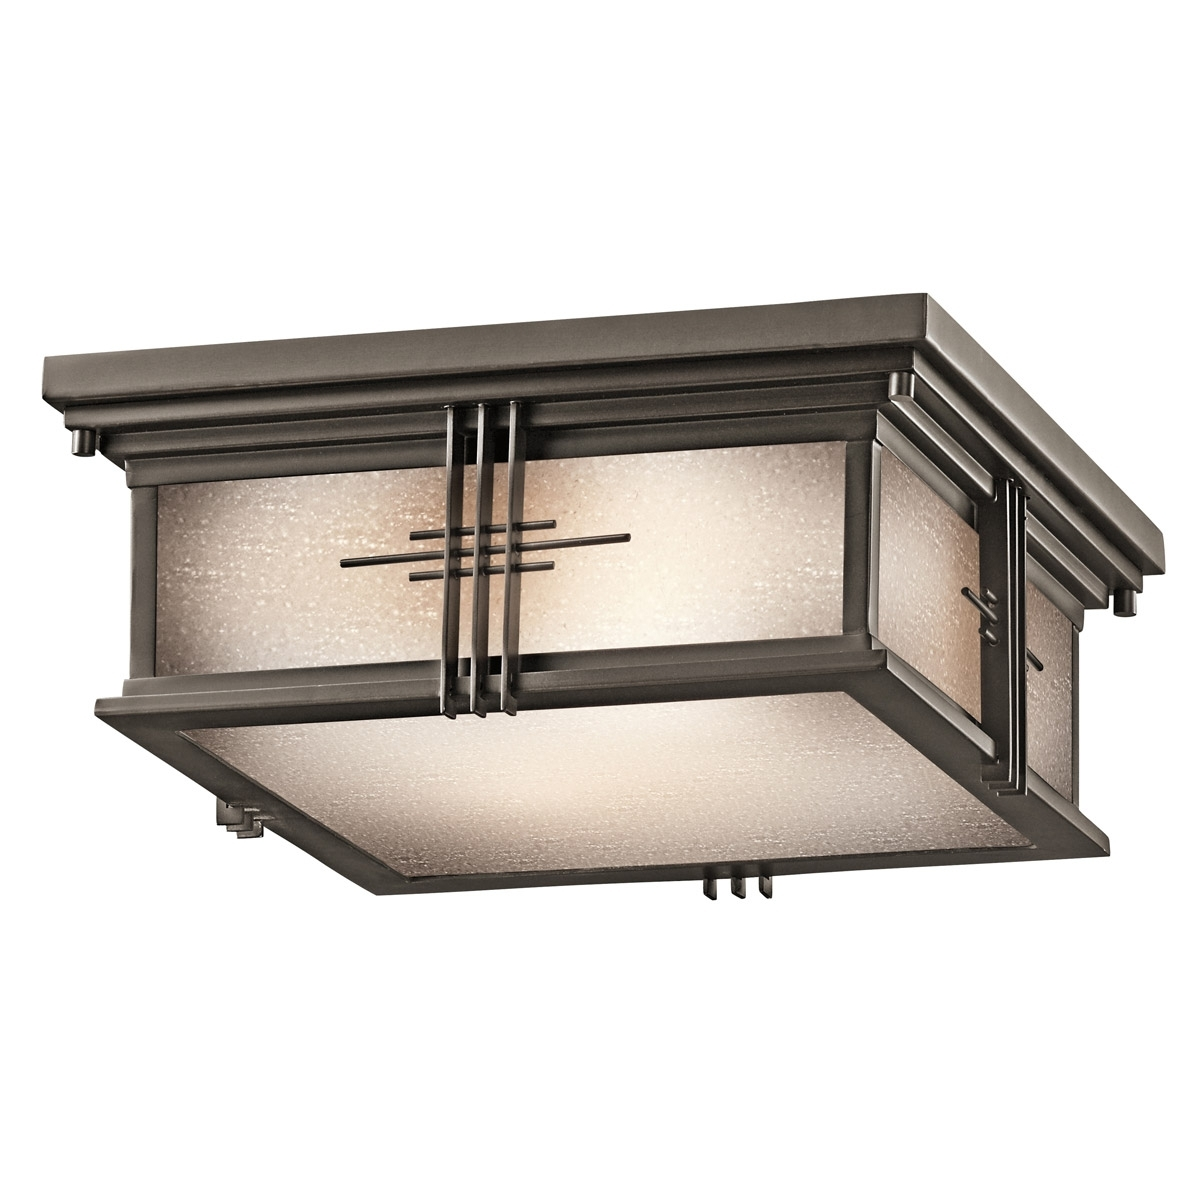 49164Oz Portman Square Outdoor Flush Mount Ceiling Fixture Intended For Most Popular Outdoor Close To Ceiling Lights (View 1 of 20)